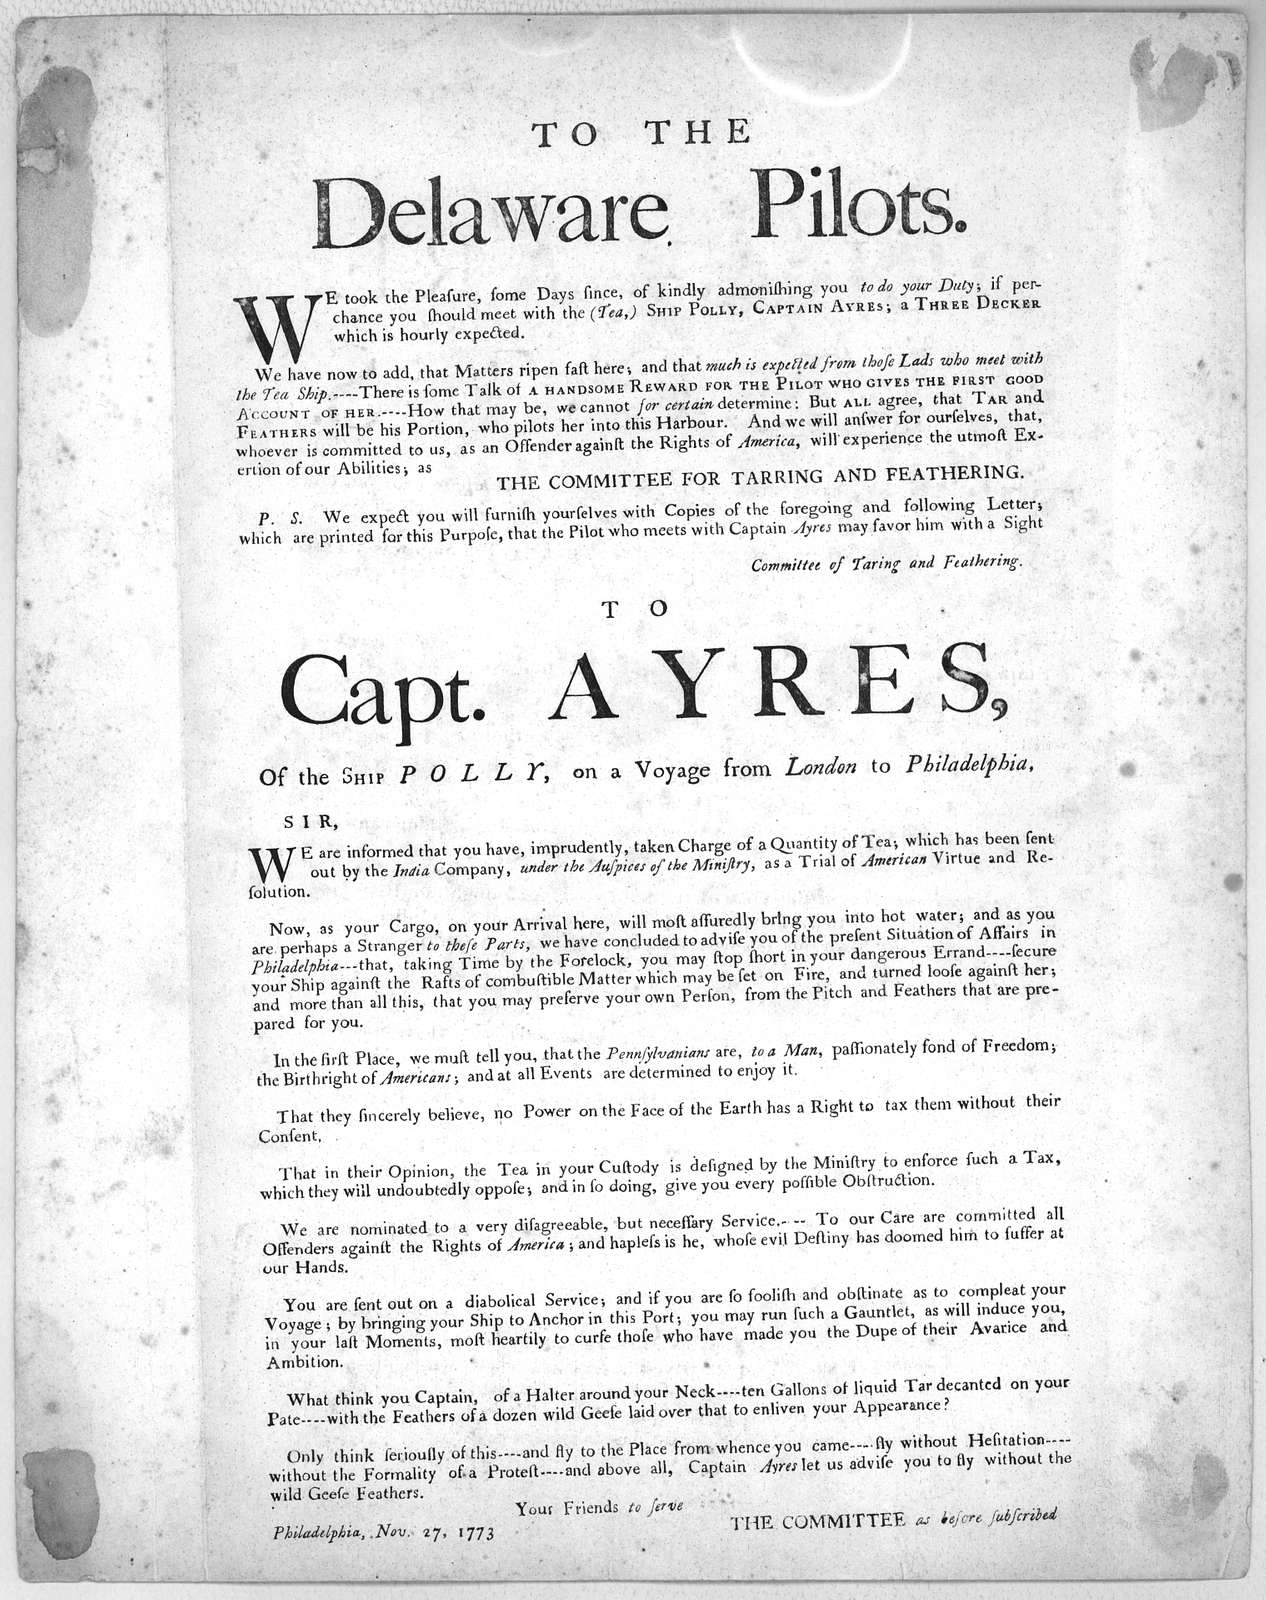 To the Delaware pilots. We took the pleasure some days since, of kindly admonishing you to do your duty; if perchance you should meet with the (ea). Ship Polly, Captain Ayres; a three decker which is hourly expected .... to Capt. Ayres of the sh